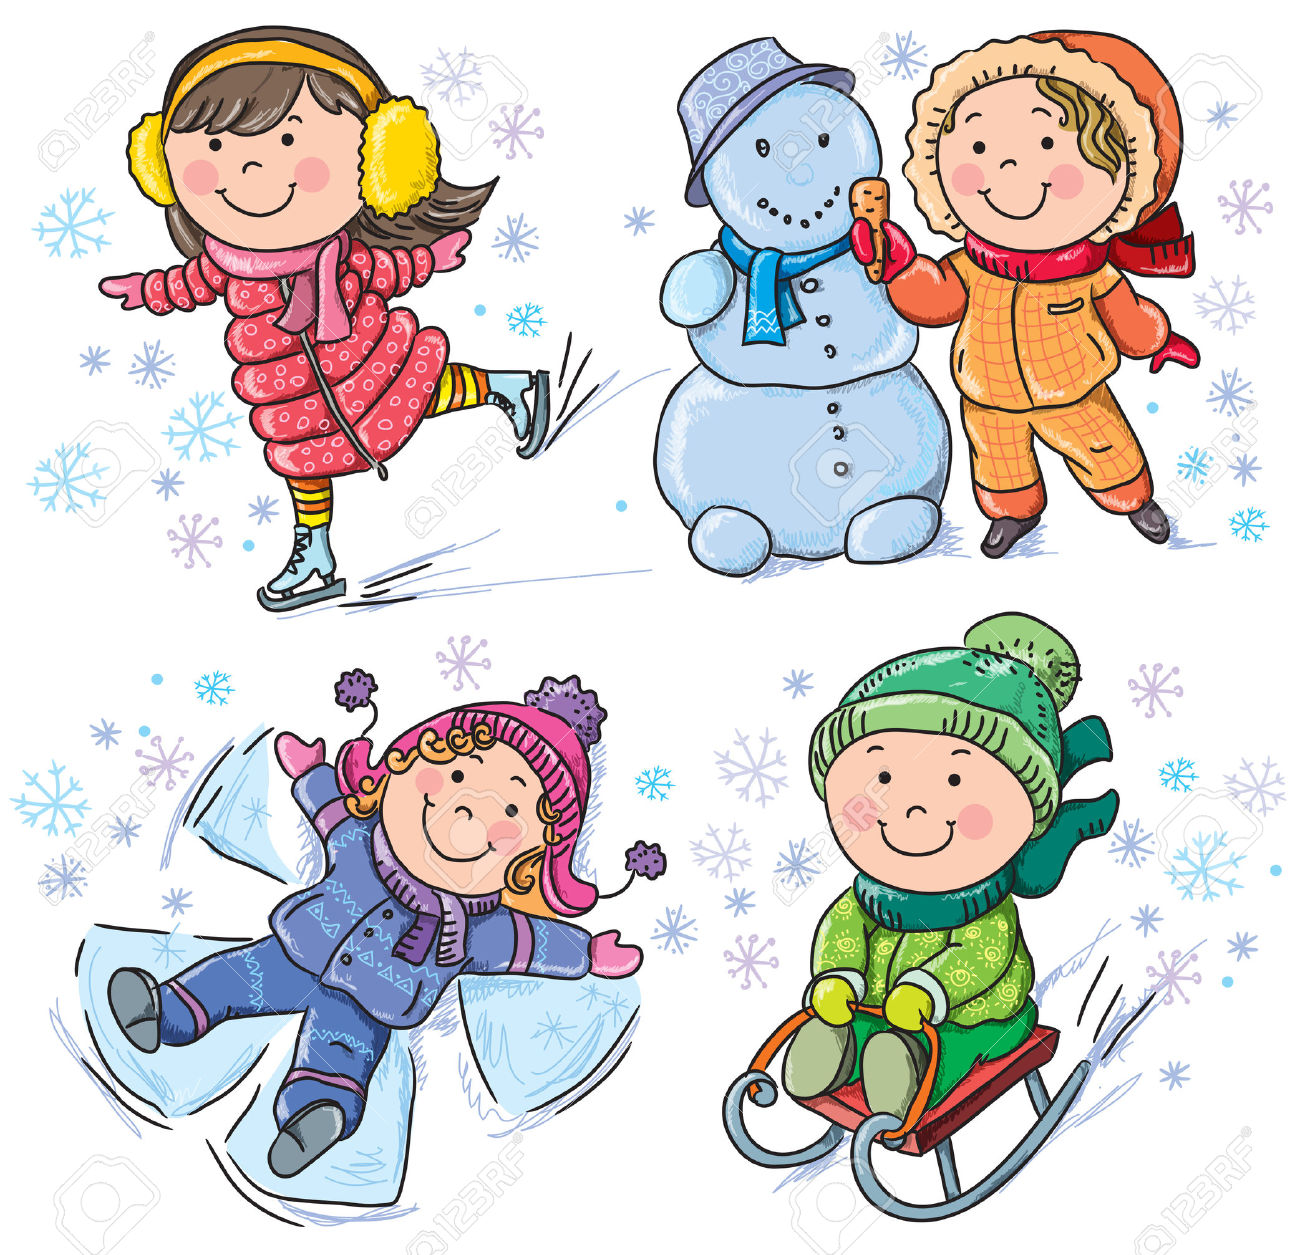 2,450 Ice Winter Clothes Stock Vector Illustration And Royalty.